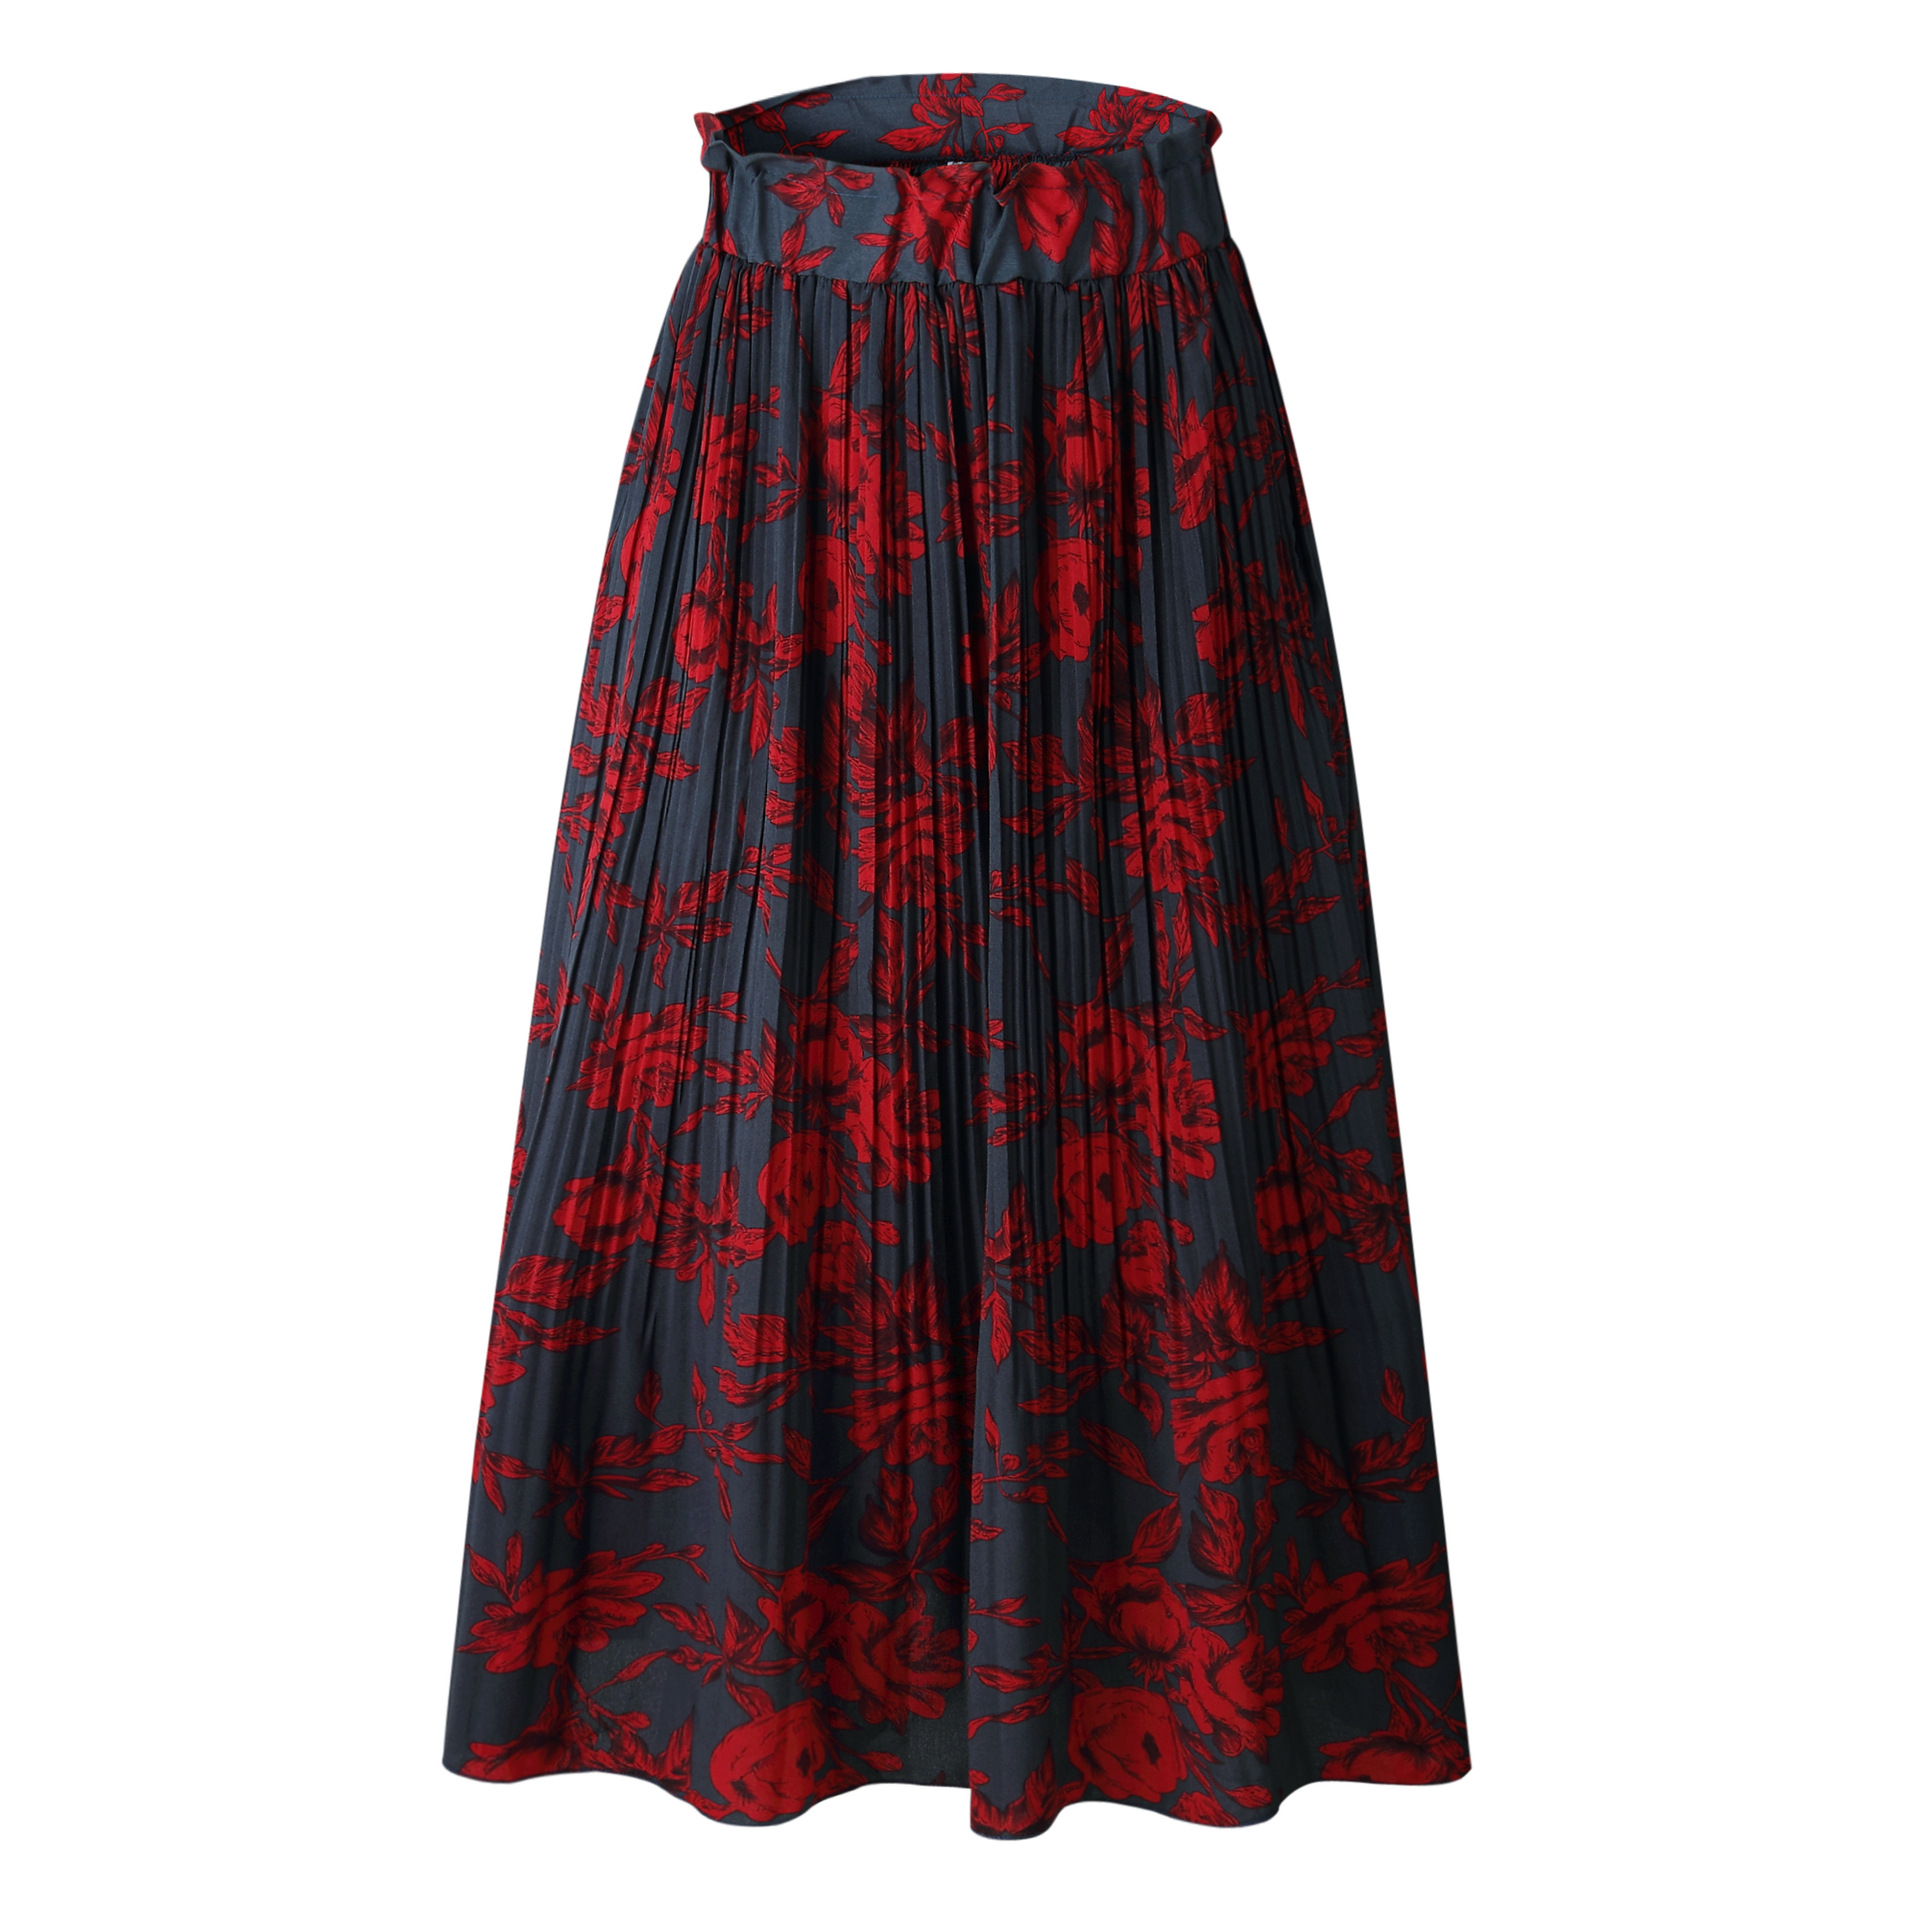 H8fd150ebbcf045ecb446ea22507463733 - Summer Casual Chiffon Print Pockets High Waist Pleated Maxi Skirt Womens Long Skirts For Women